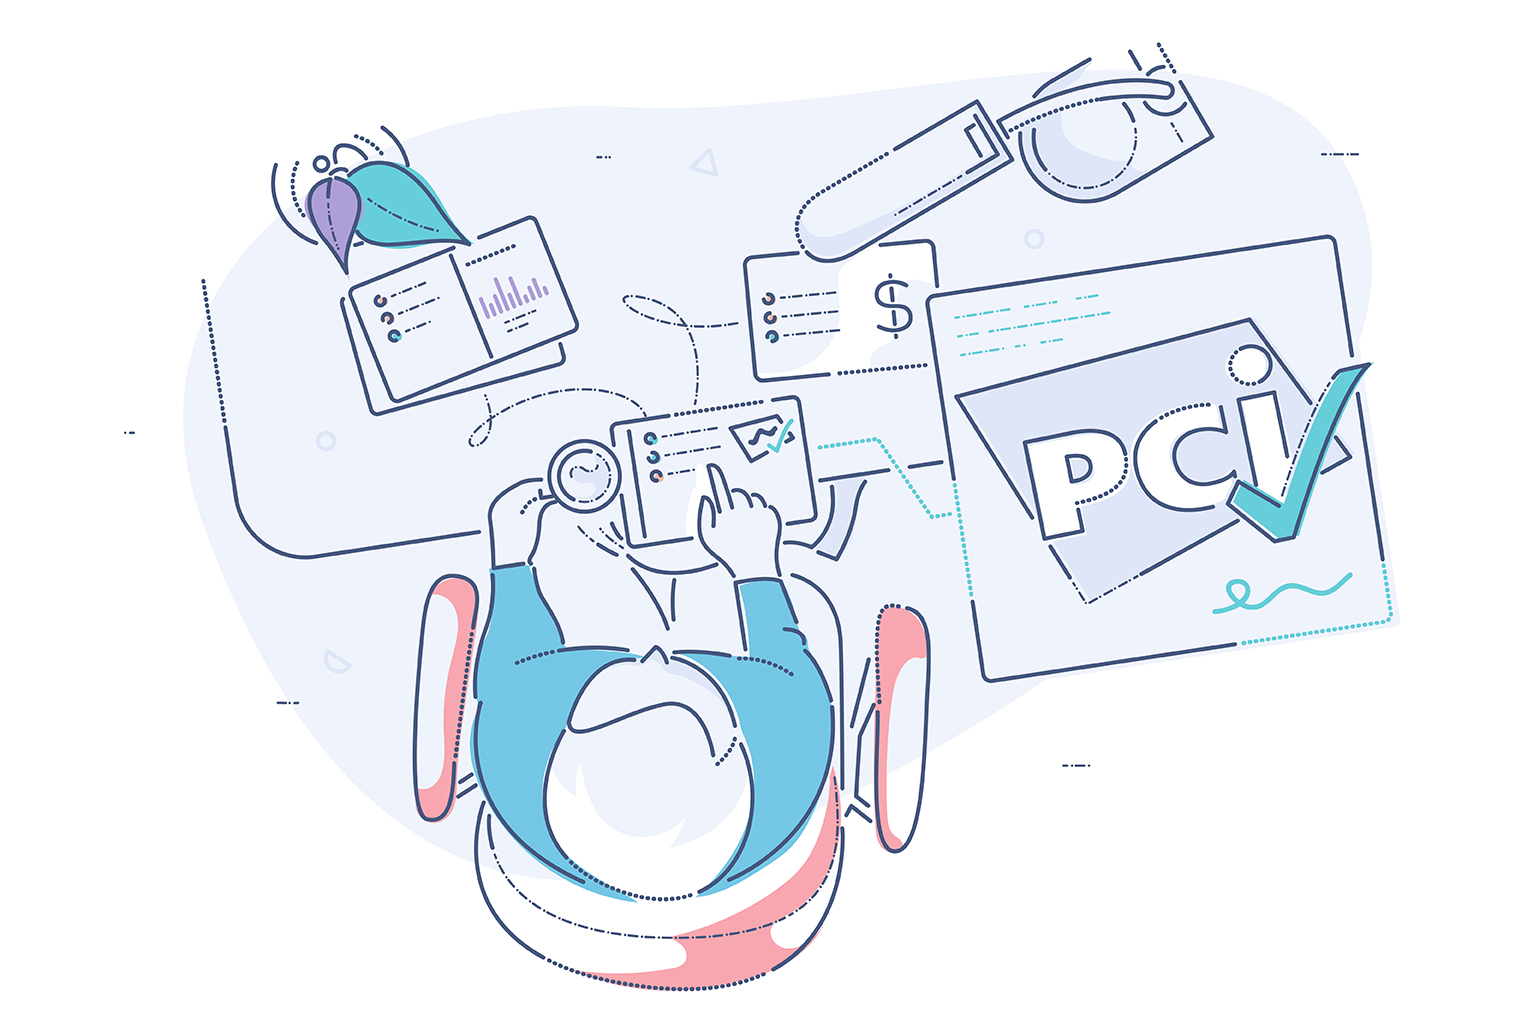 Data security essentials evaluation tool - illustration of merchant working on device to ensure PCI compliance